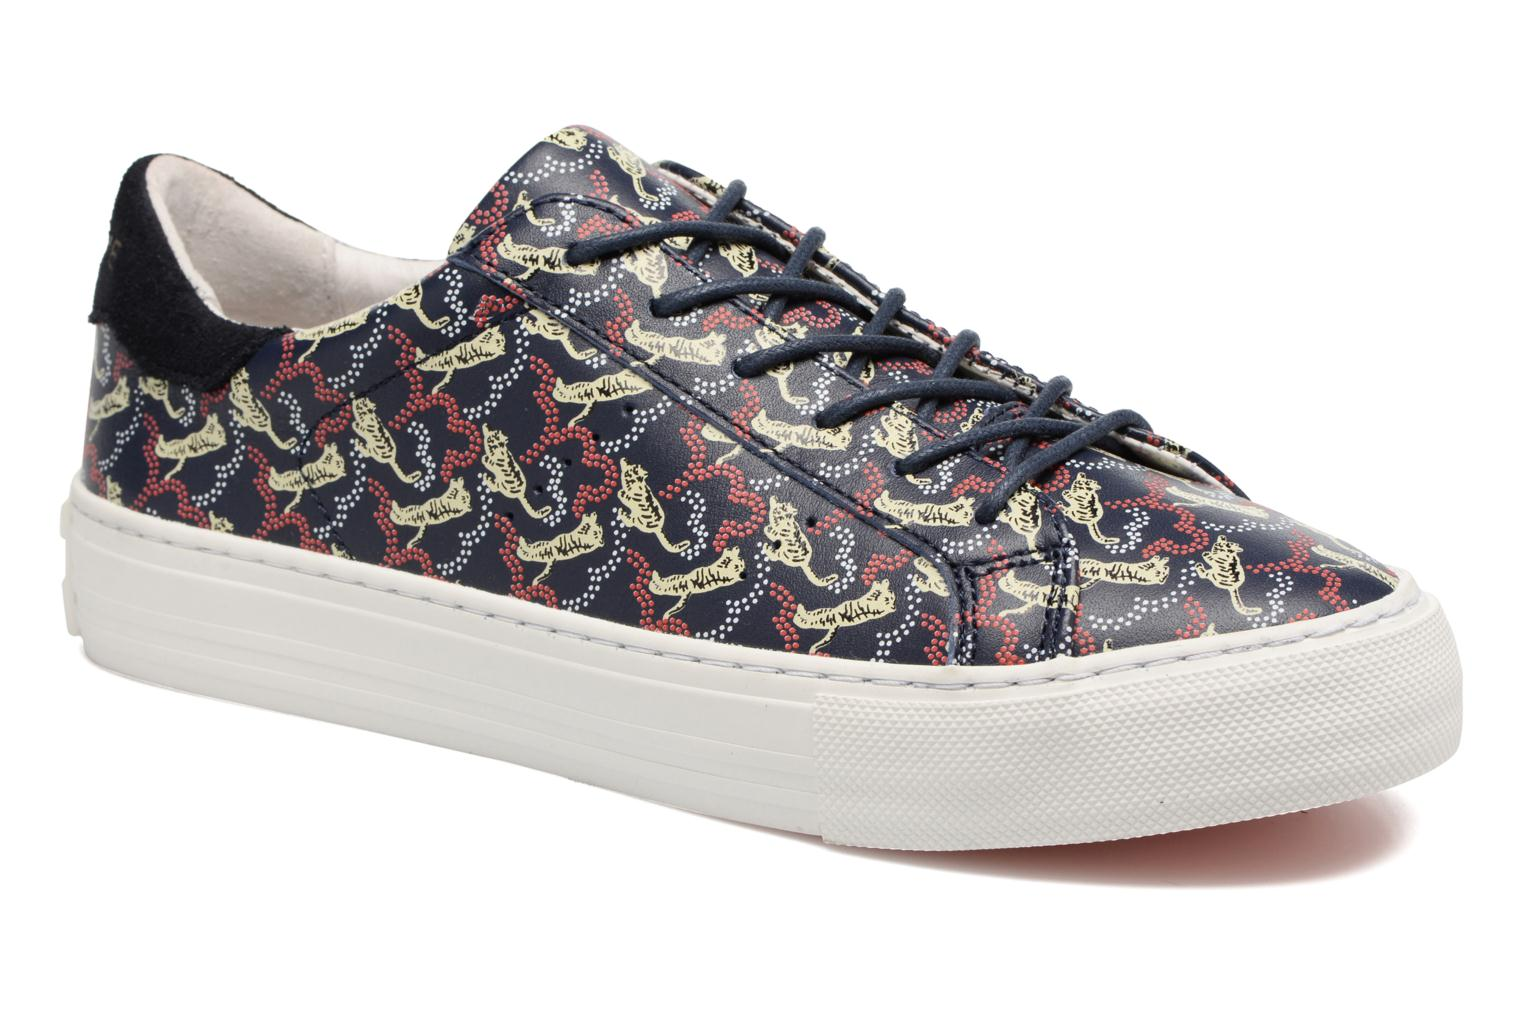 Marques Chaussure femme No Name femme Arcade sneaker pink nappa print tiger Navy Fox White